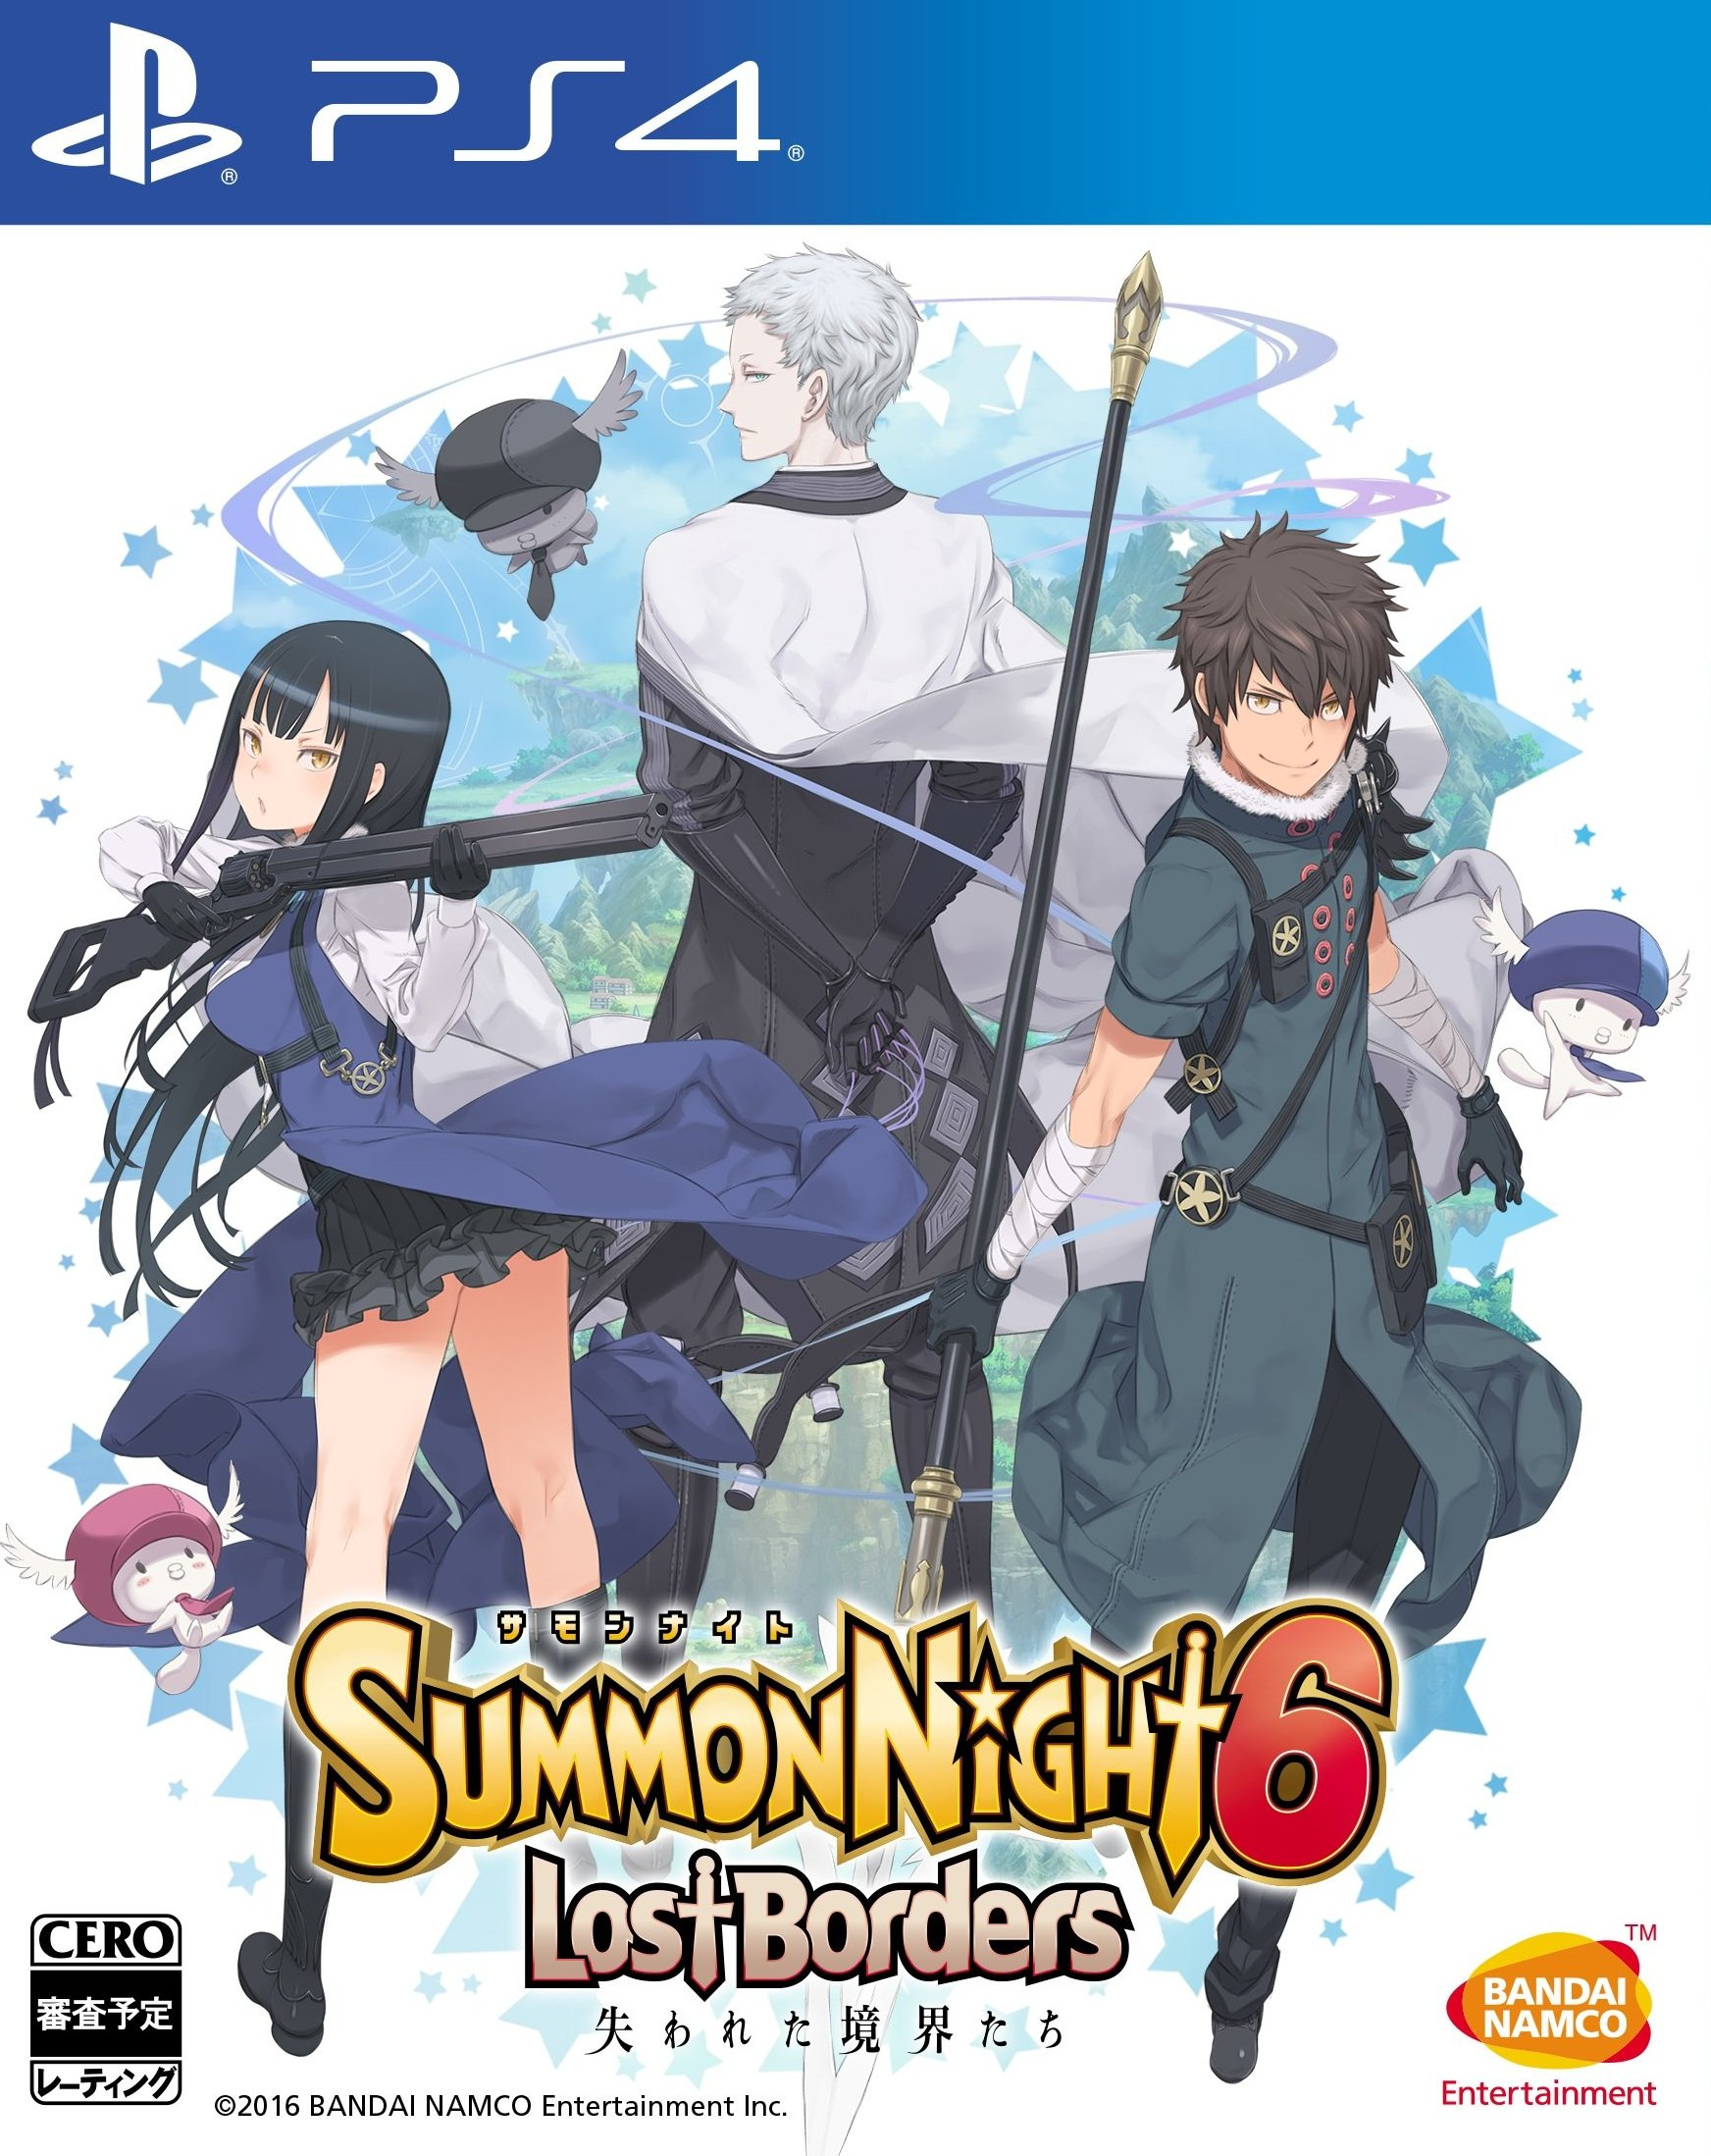 Summon Night 6: Lost Border